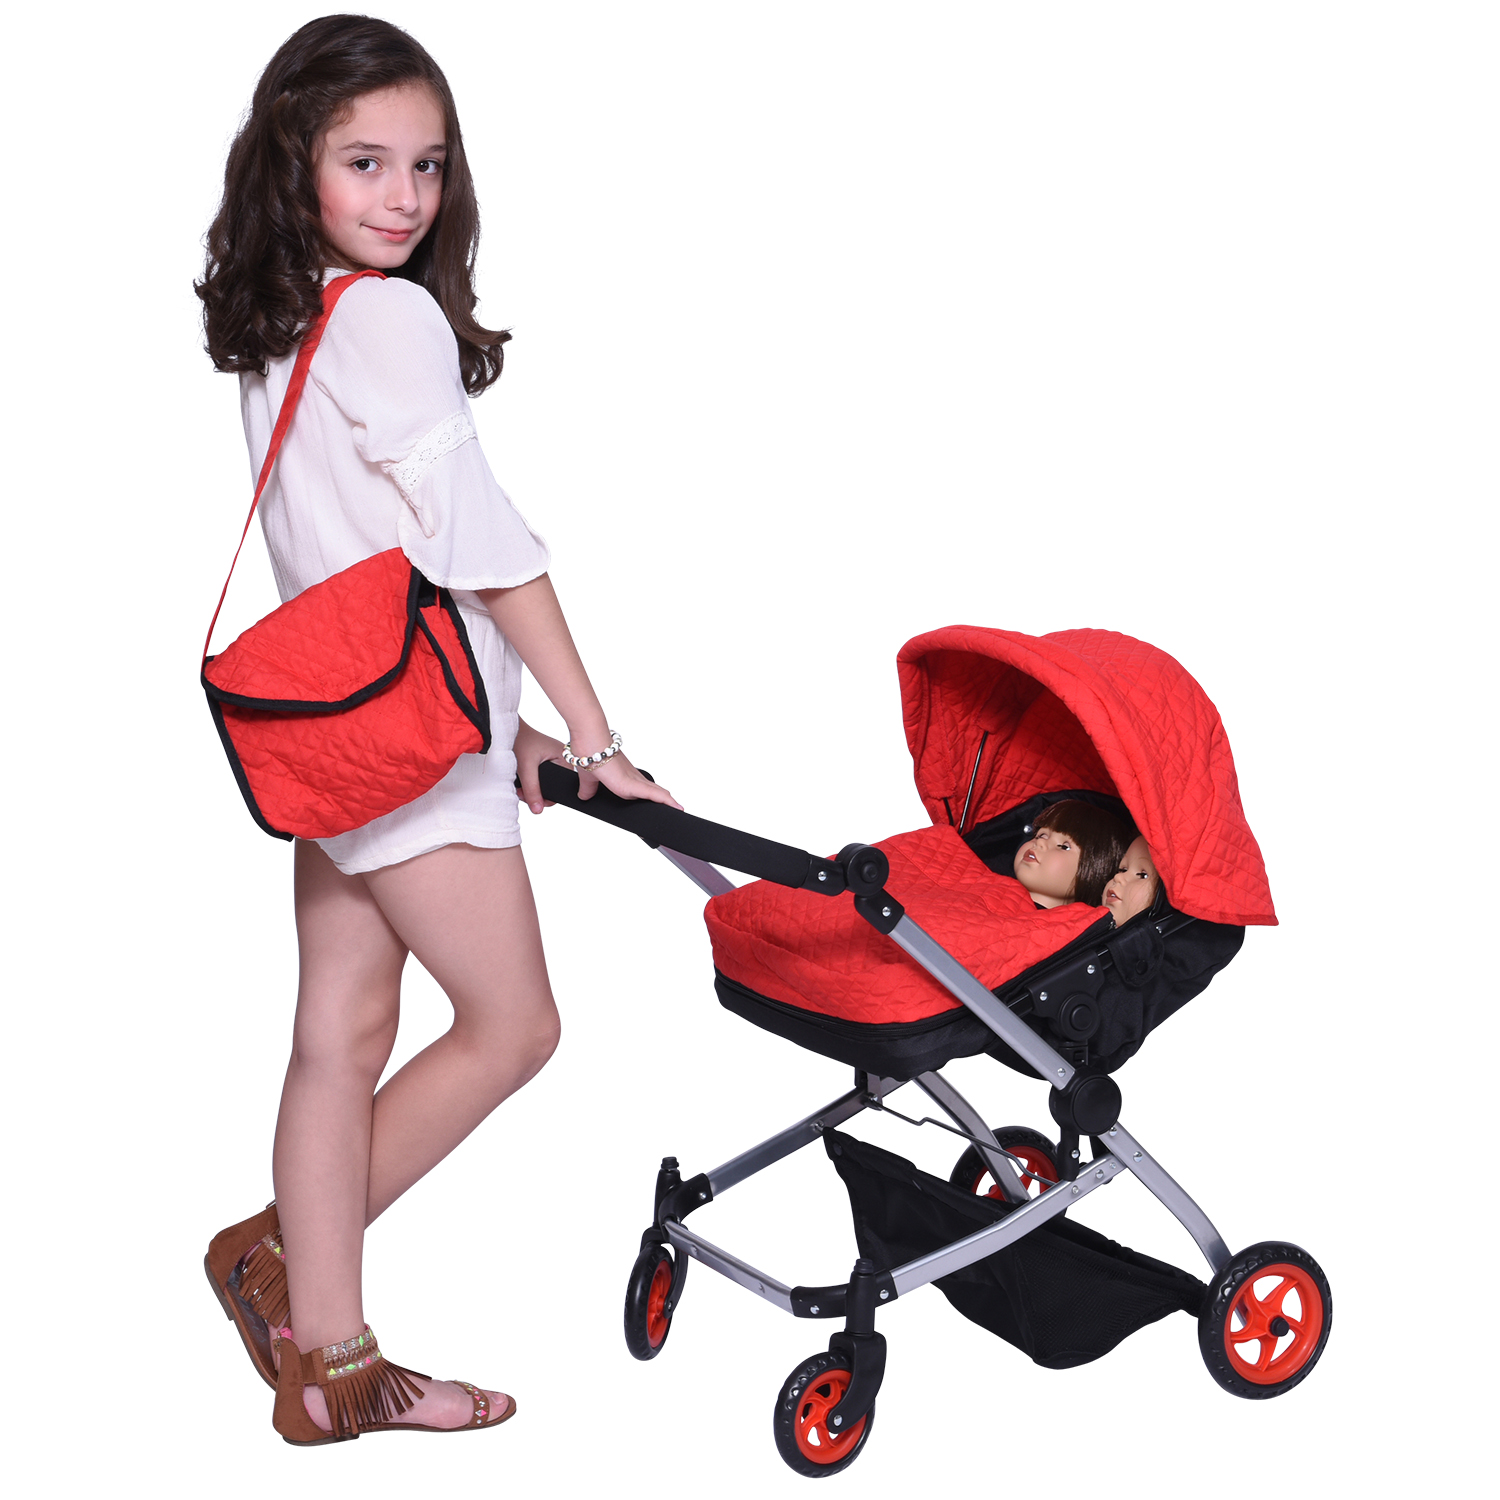 Modern Twin Deluxe Baby Boo Stroller, Red Quilted Fabric, Adjustable Height Free Diaper Bag by The New York Doll Collection